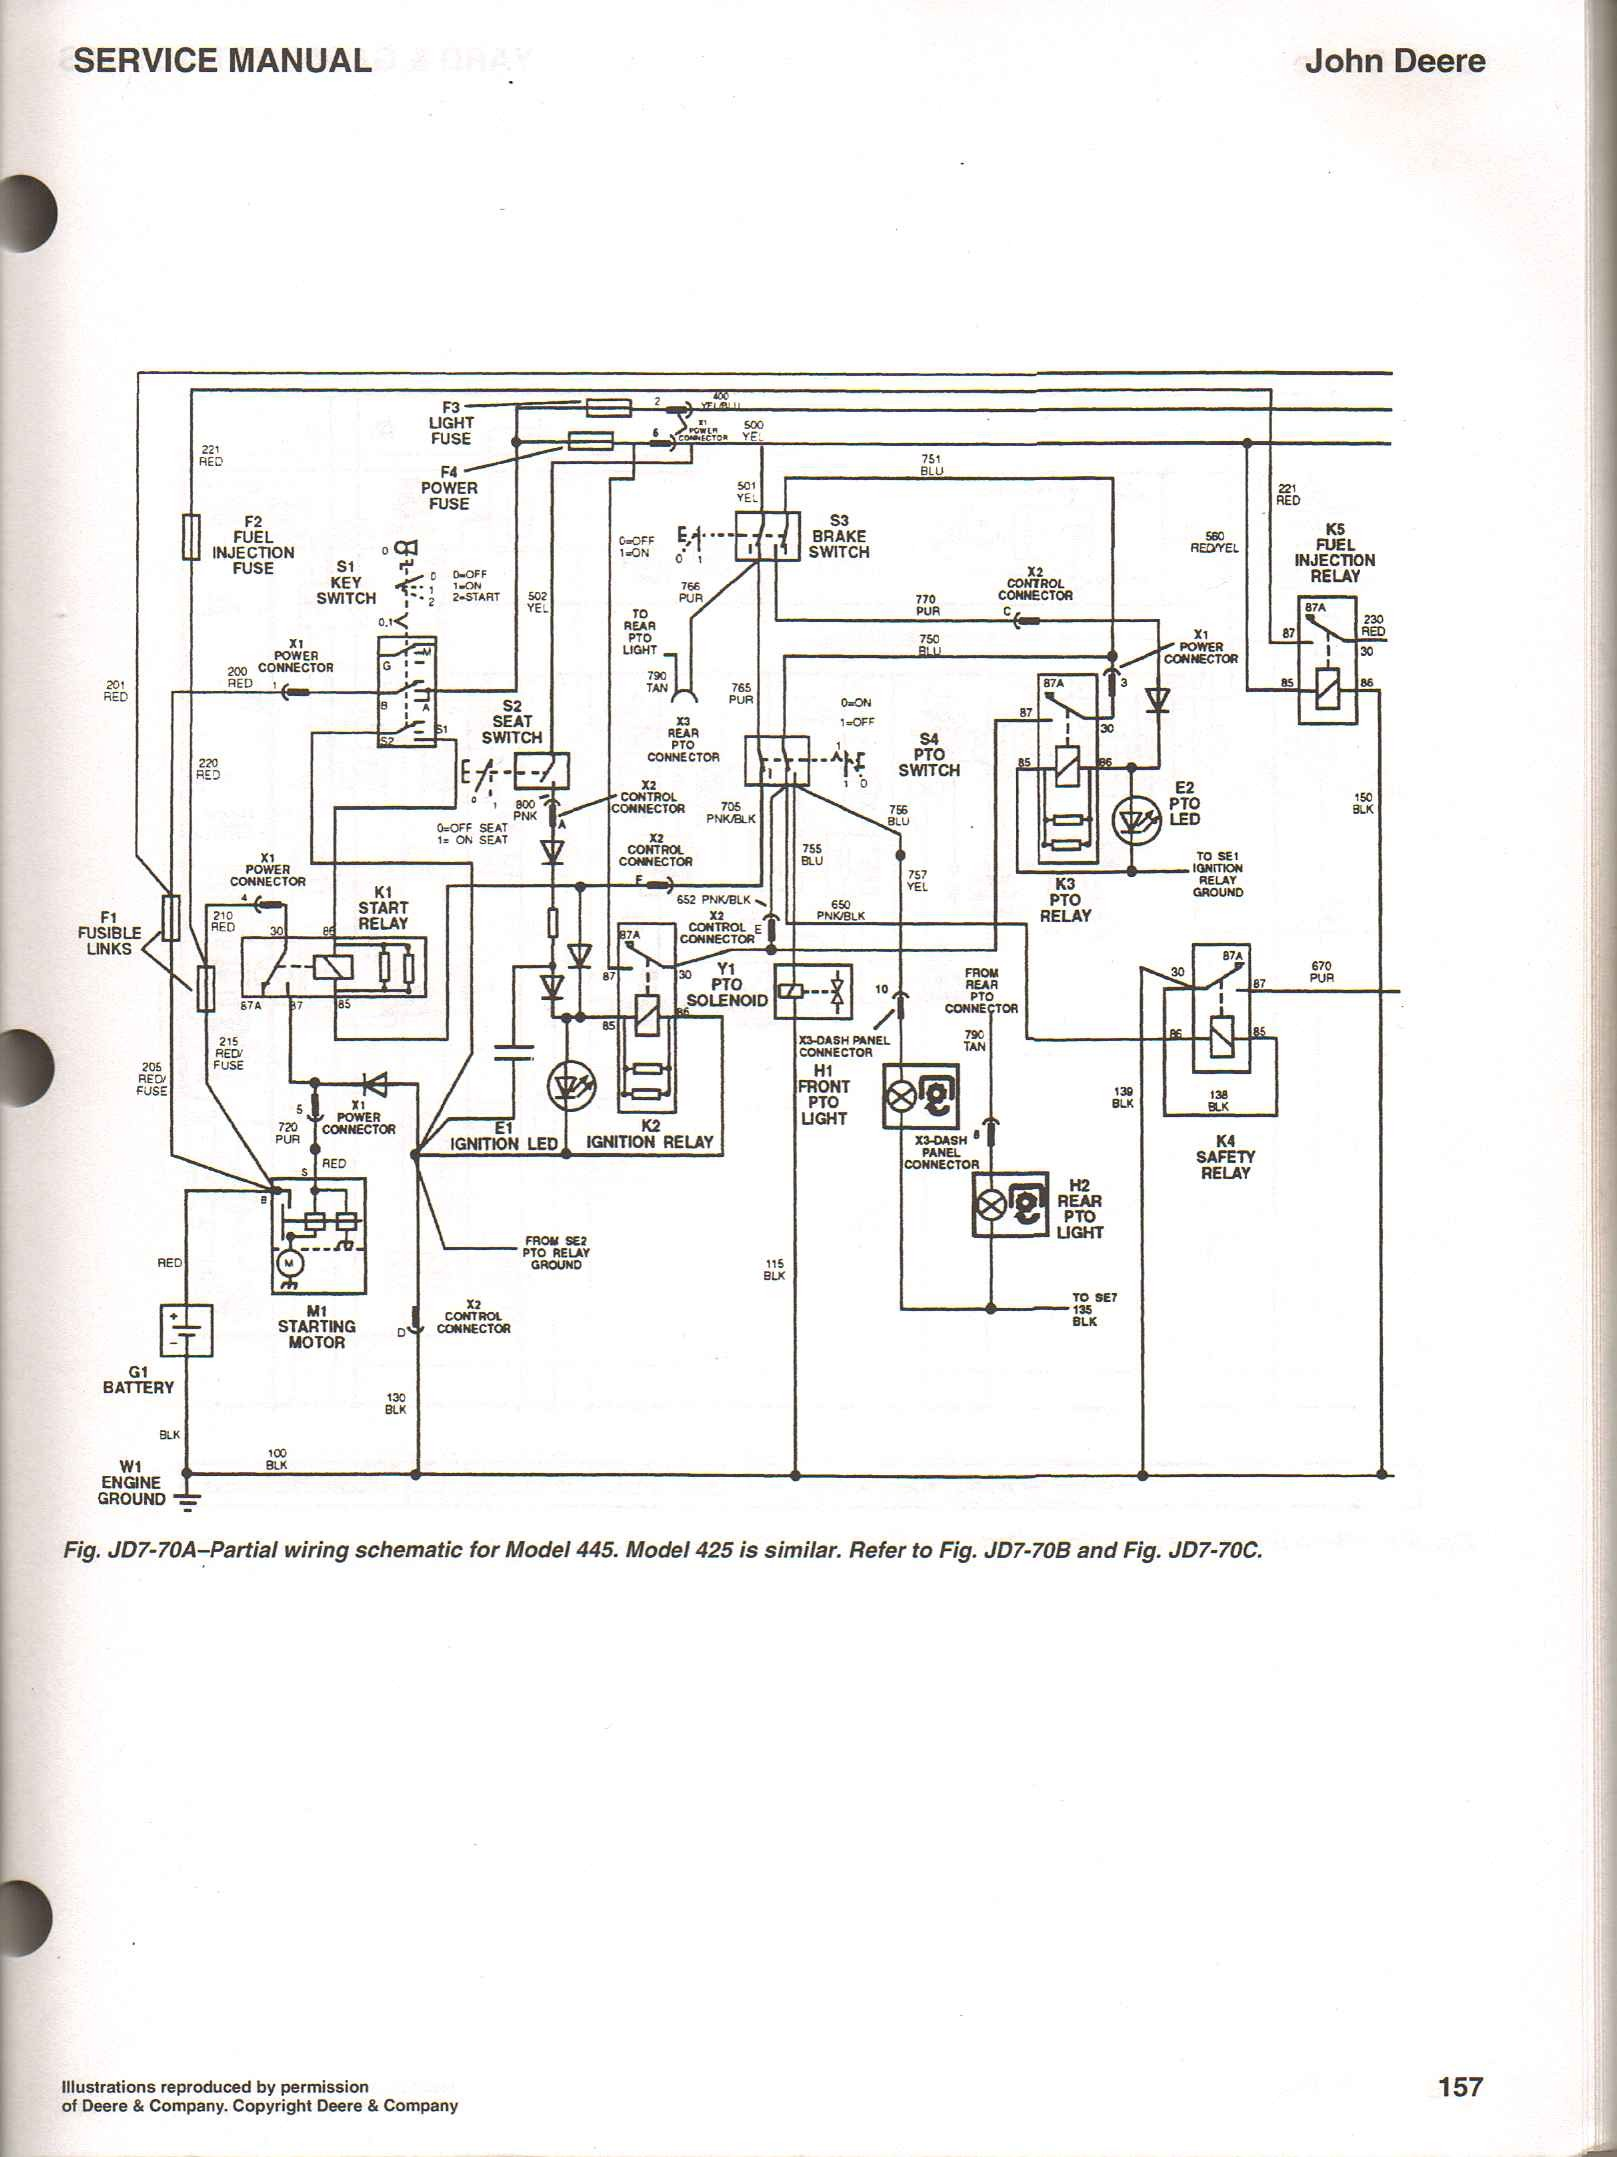 l111 wiring diagram wiring diagramjohn deere 4520 wiring diagram wiring diagram databasejd 4230 starter wiring diagram online wiring diagram john